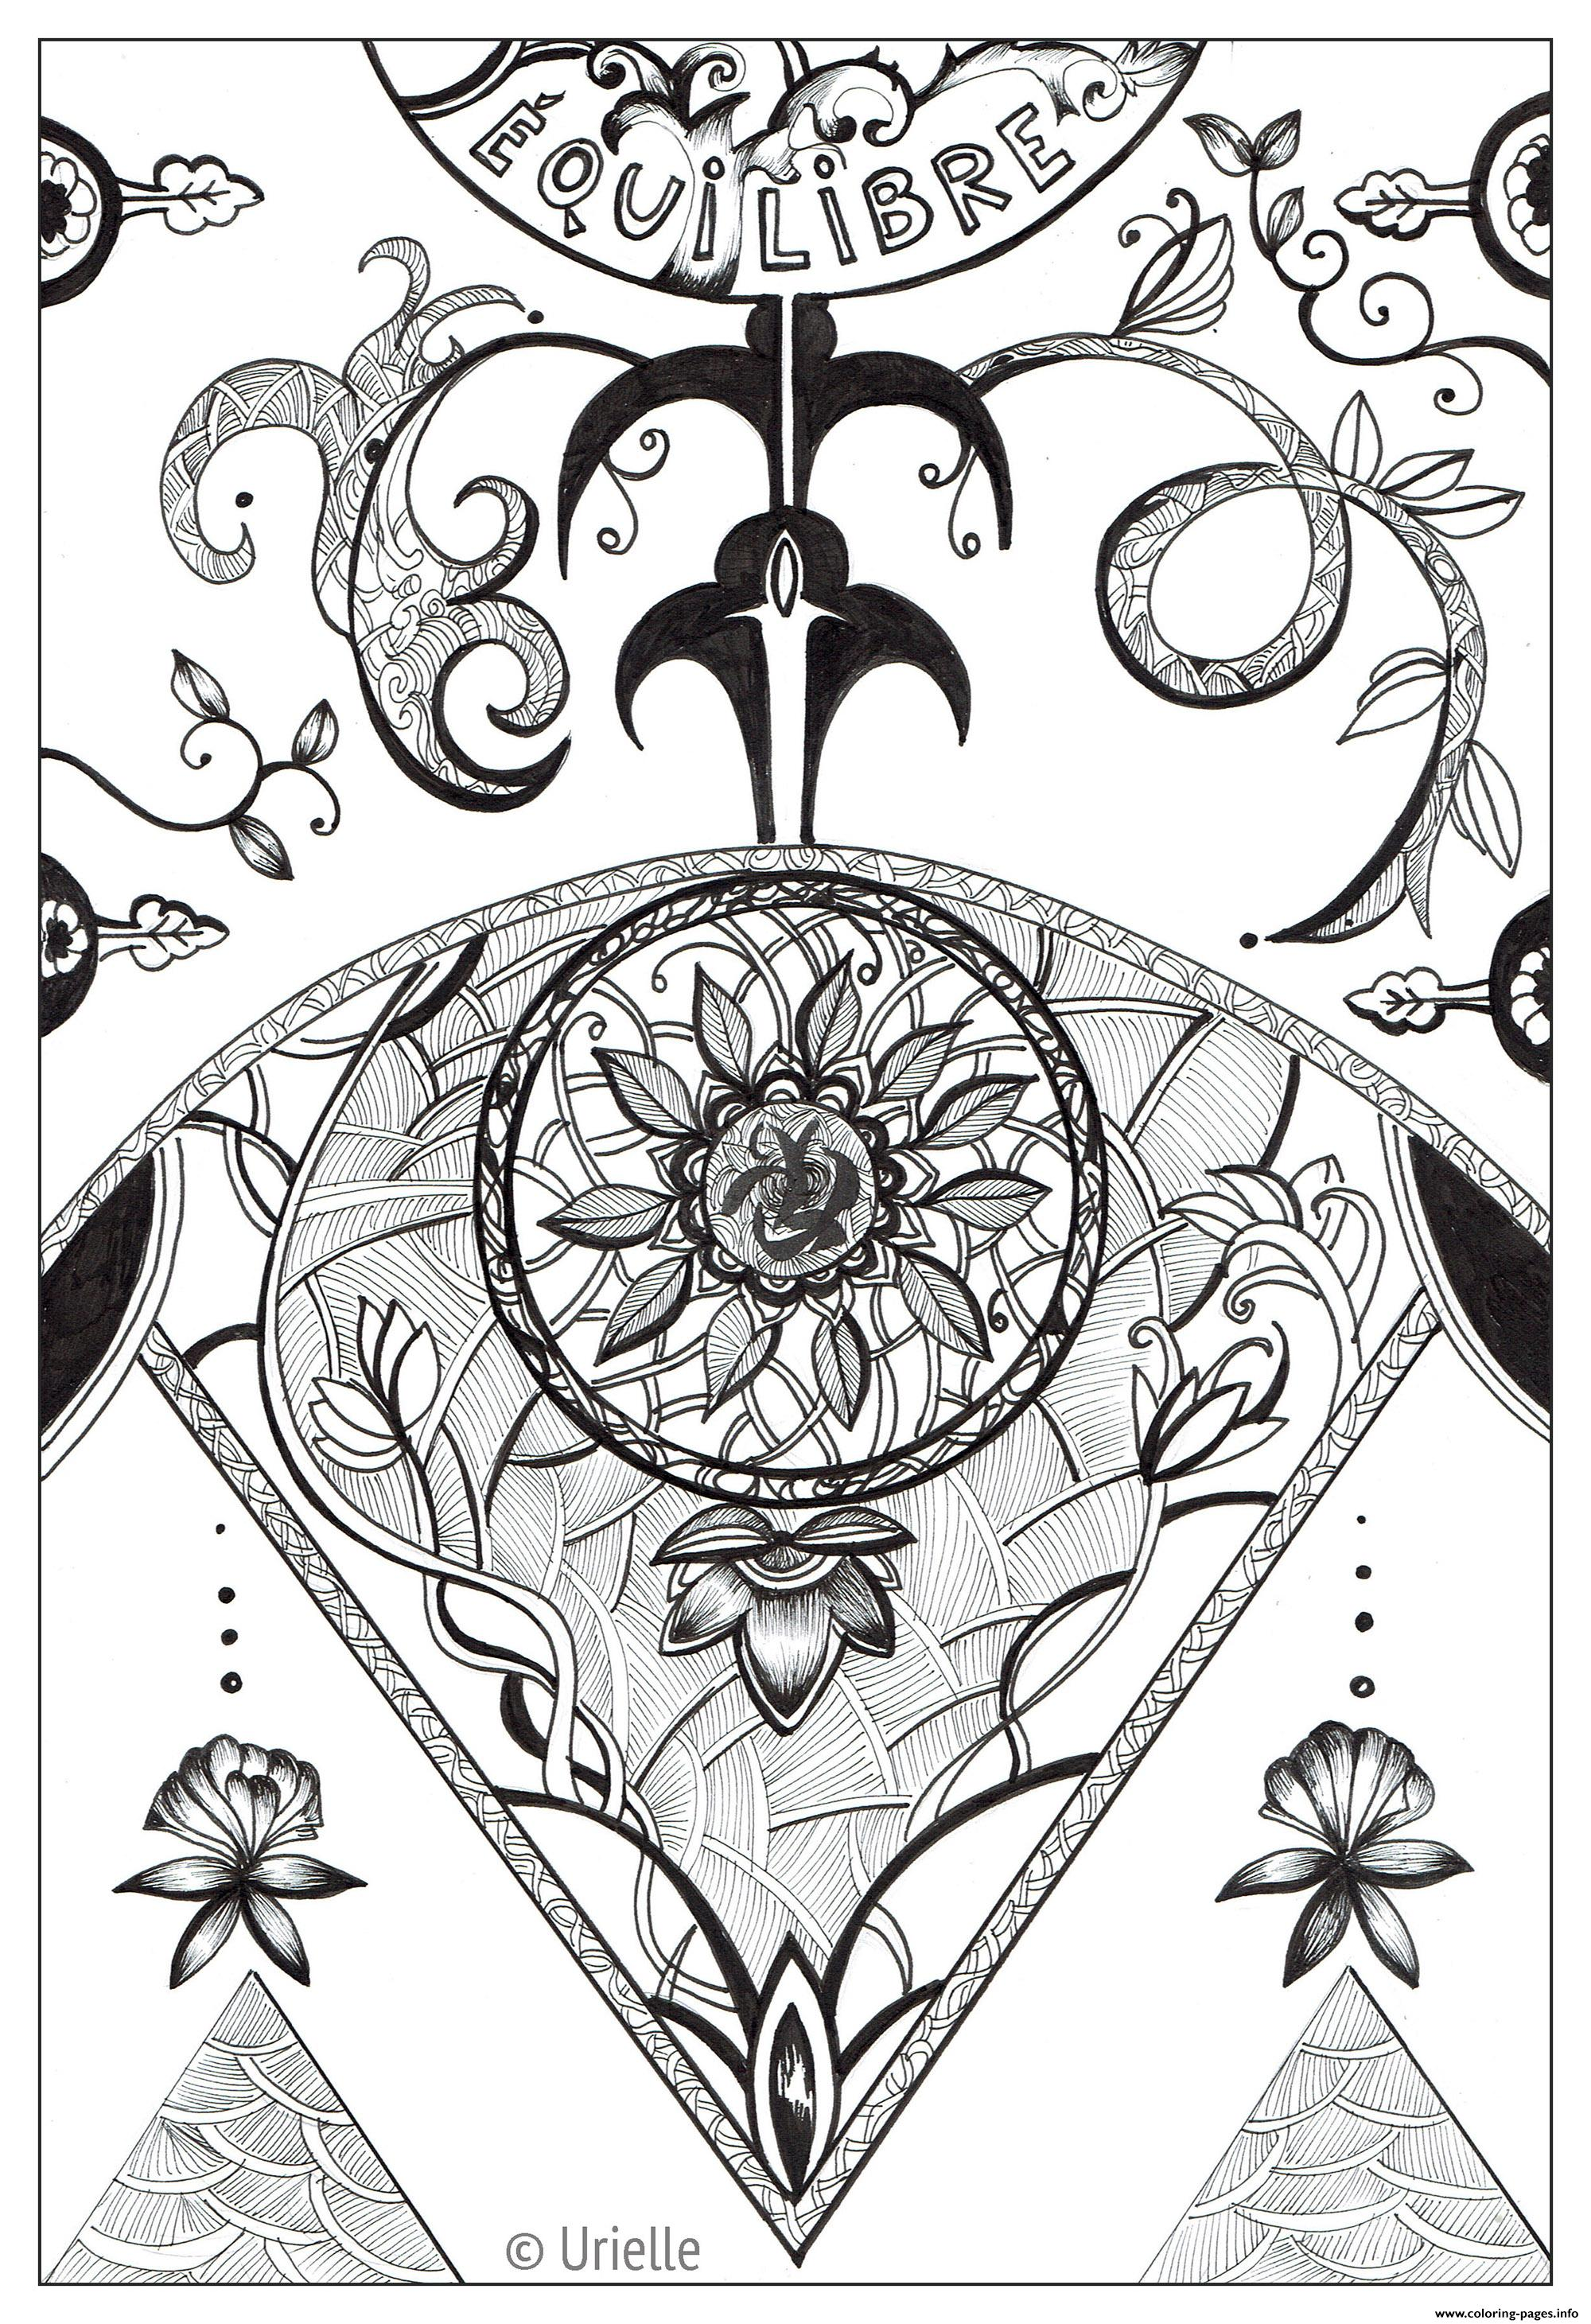 Adult Urielle Equifree Liberty coloring pages